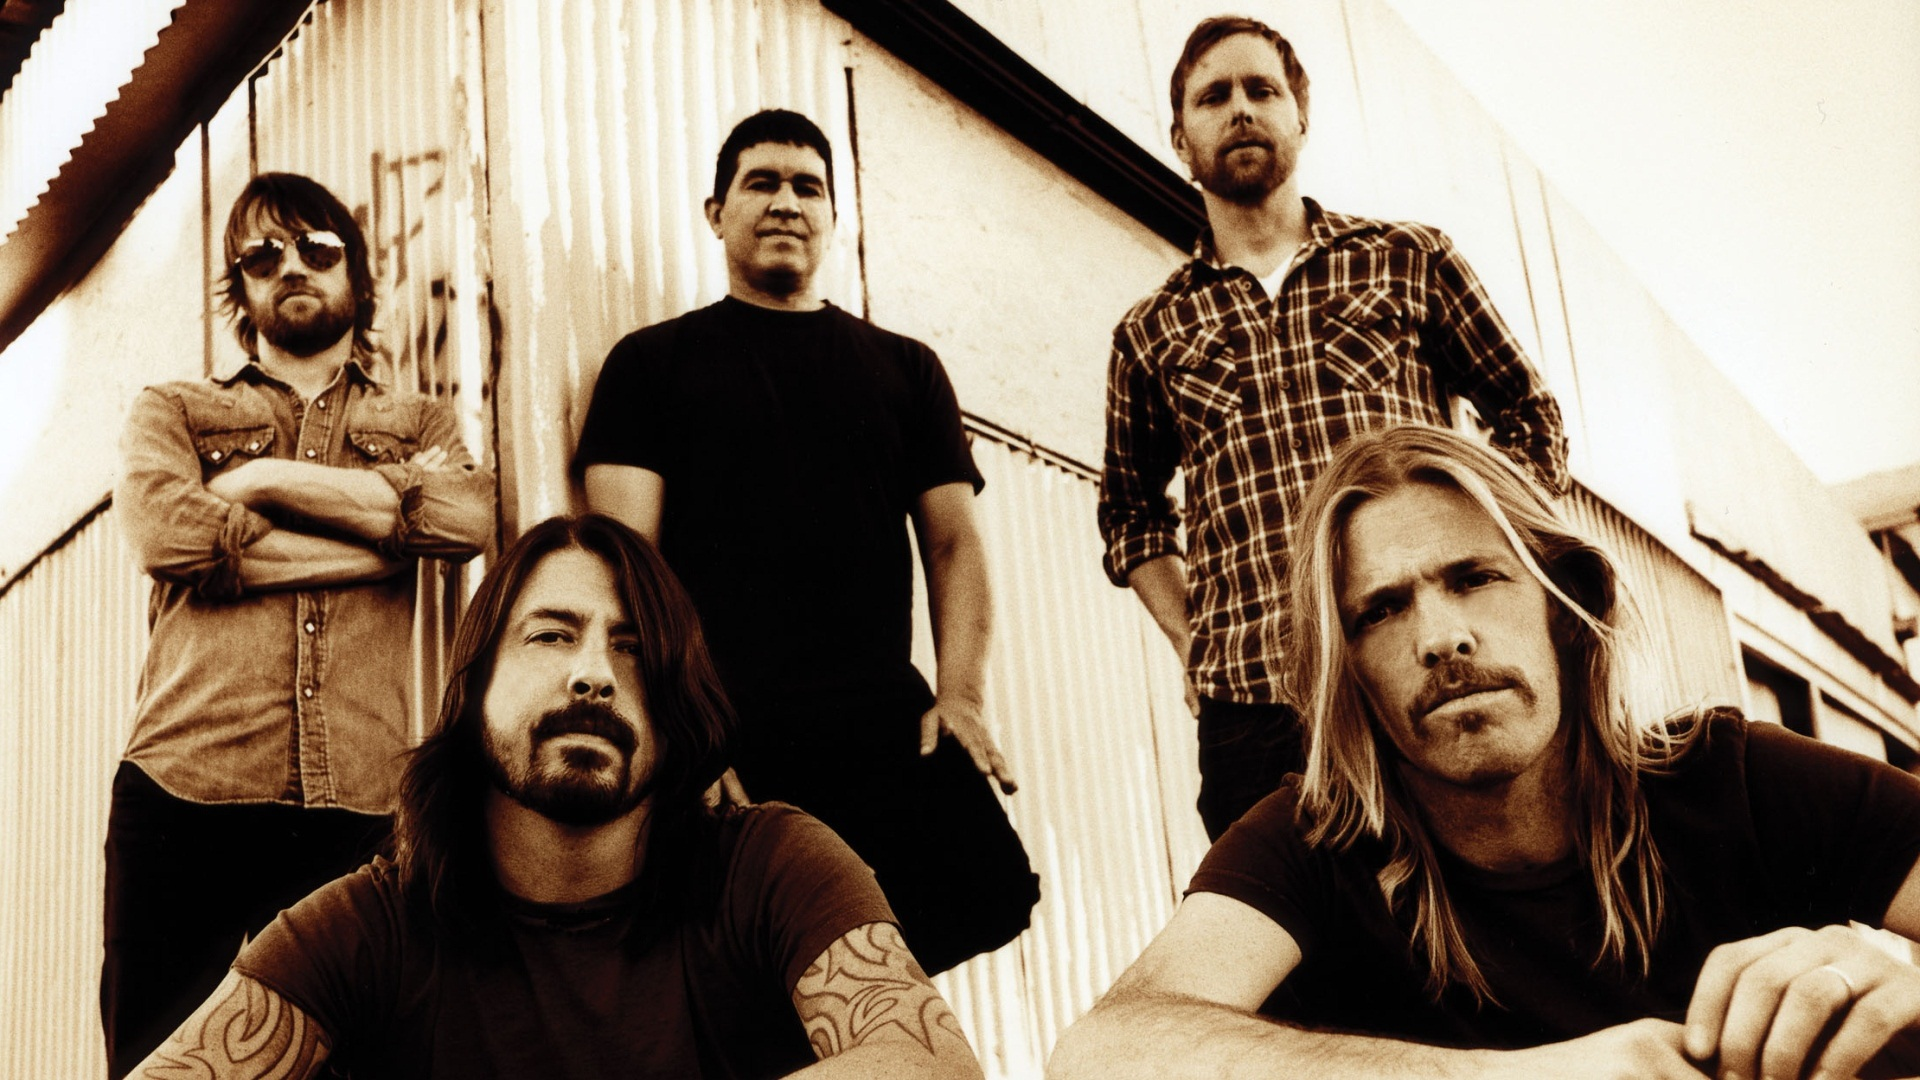 foo fighters tour dates in america 2015 foo fighters tour dates ...